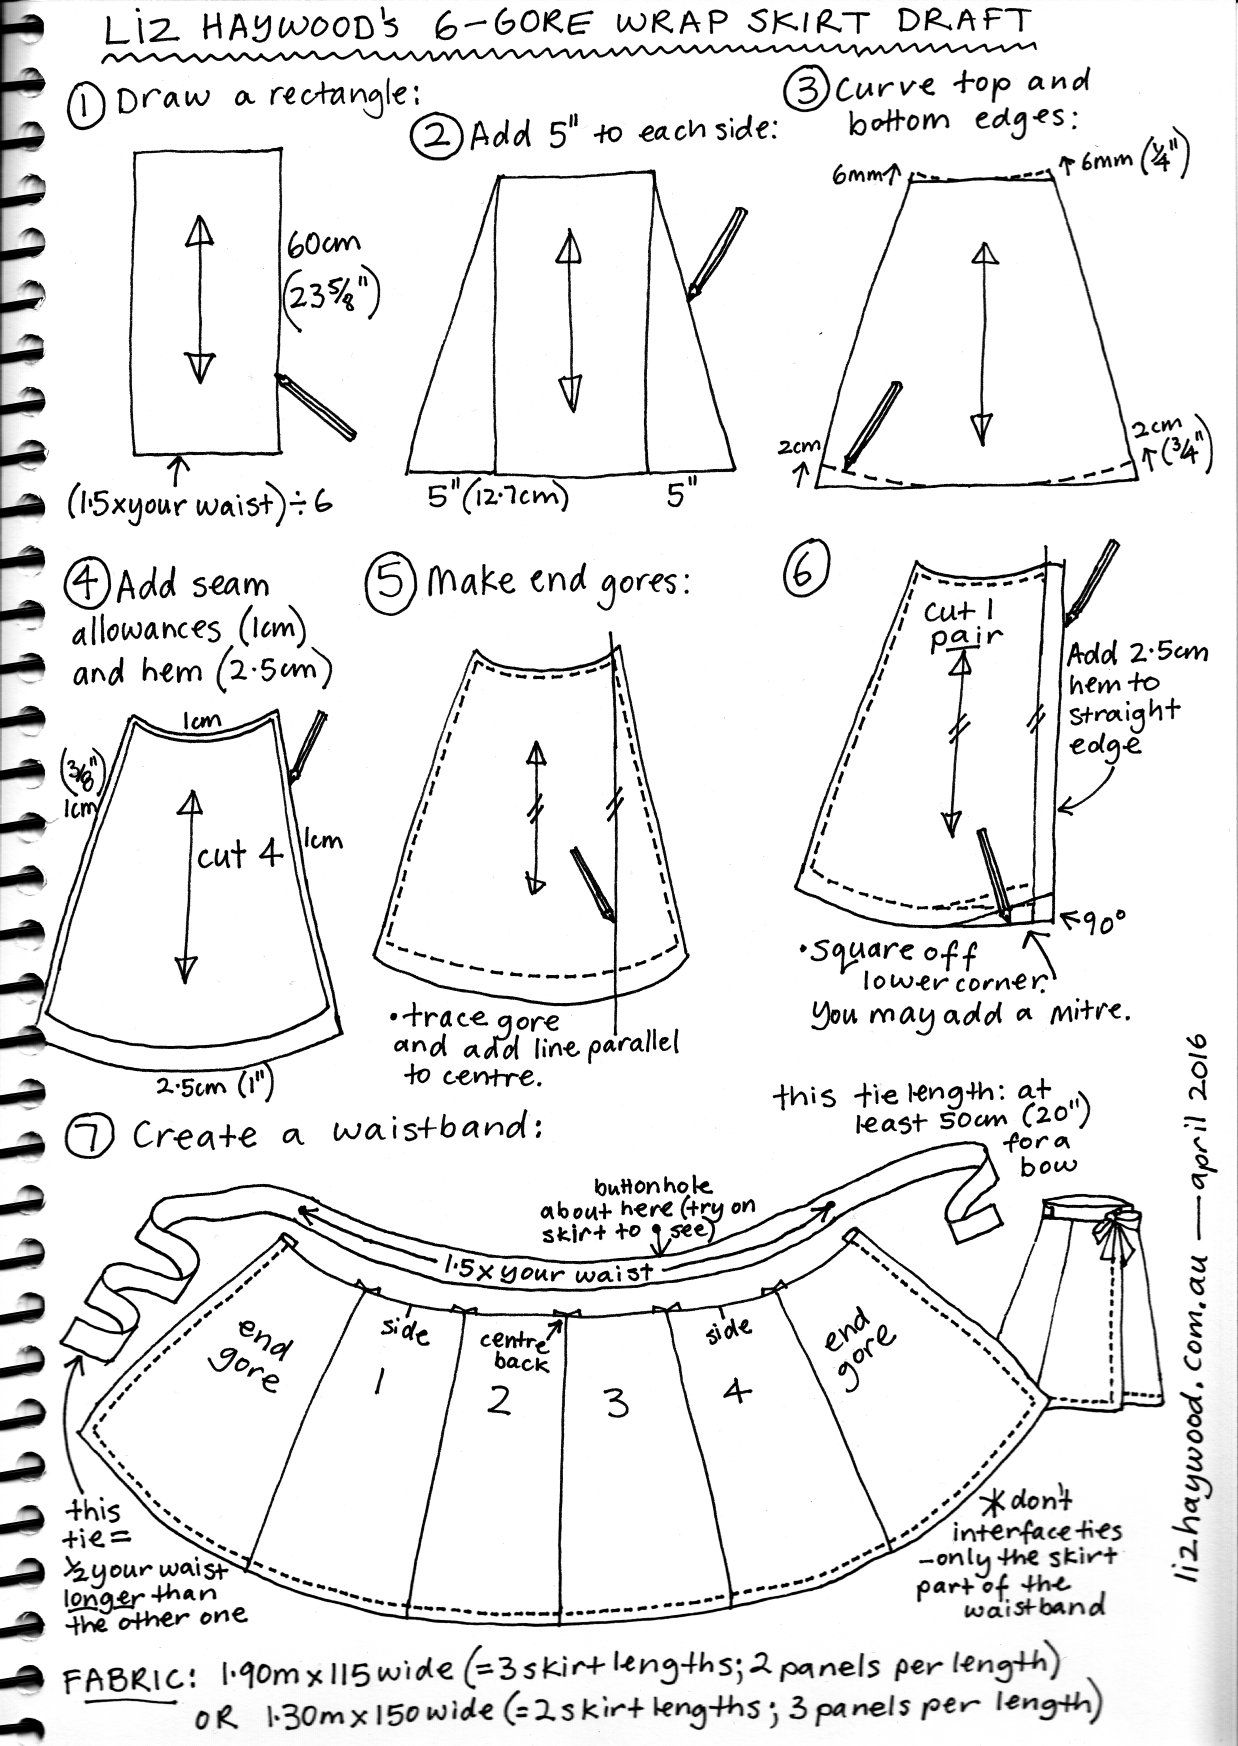 Free wrap skirt pattern summary | cucito | Pinterest | Costura ...